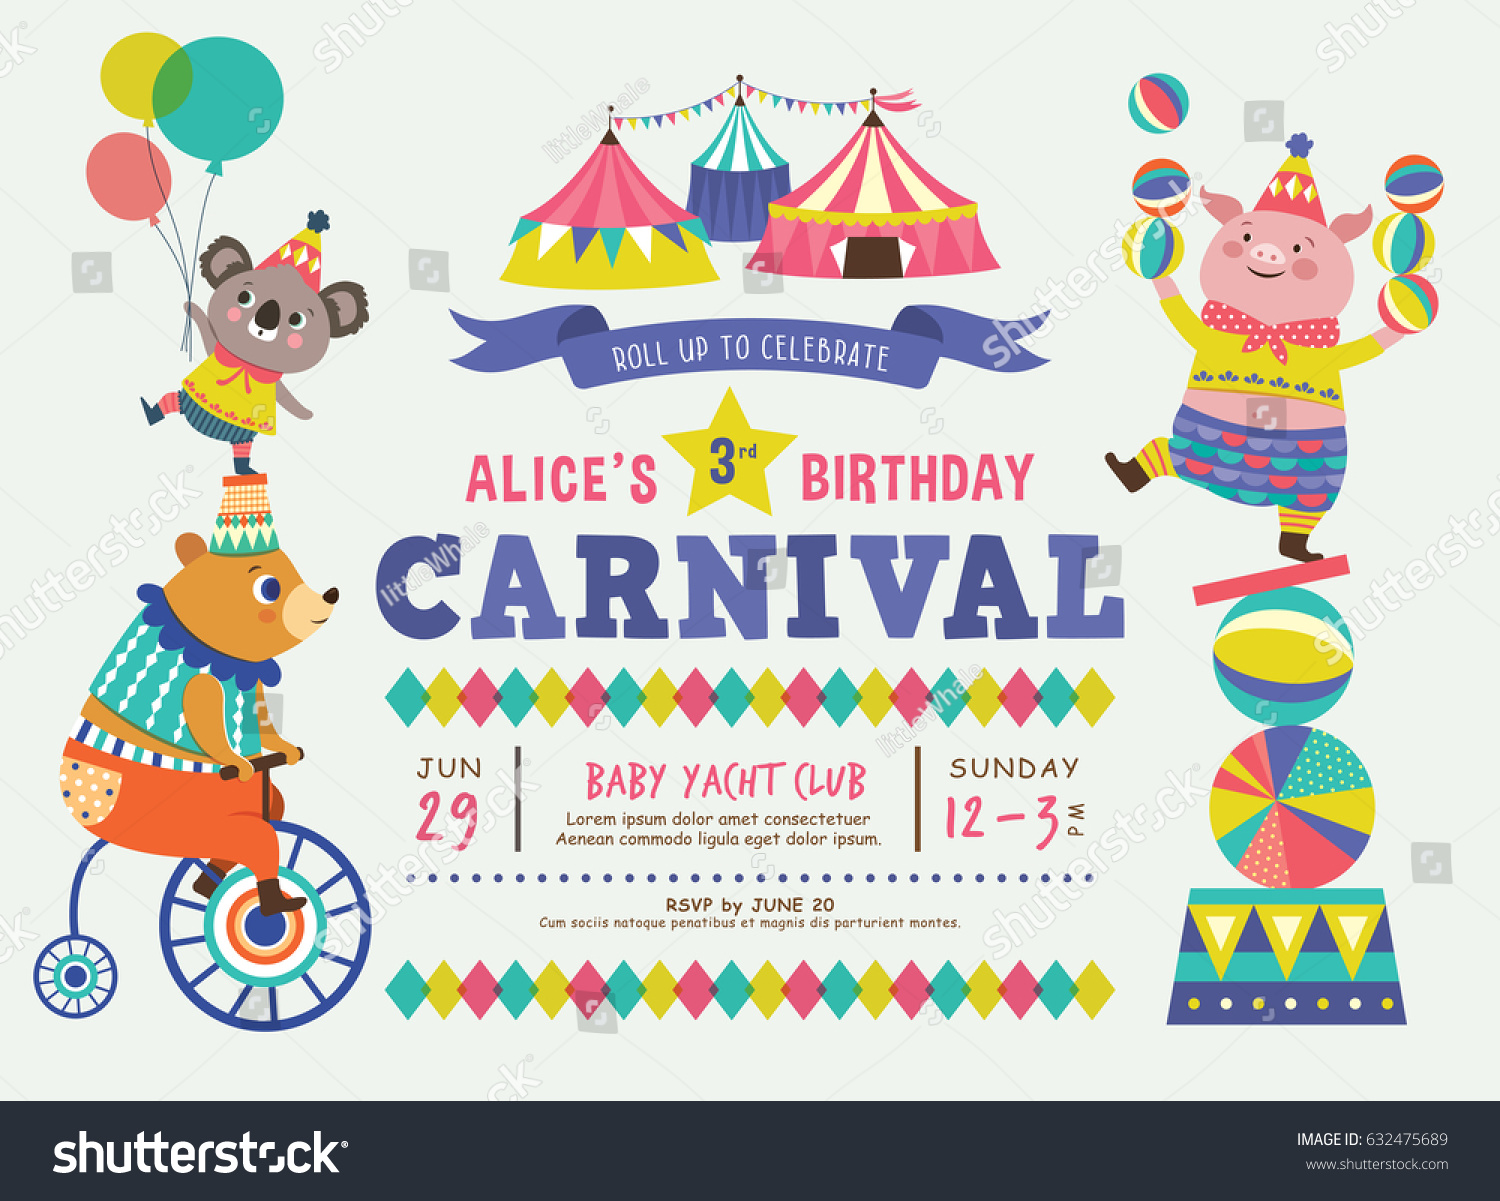 Kids birthday party invitation card circus stock vector 632475689 kids birthday party invitation card with circus theme filmwisefo